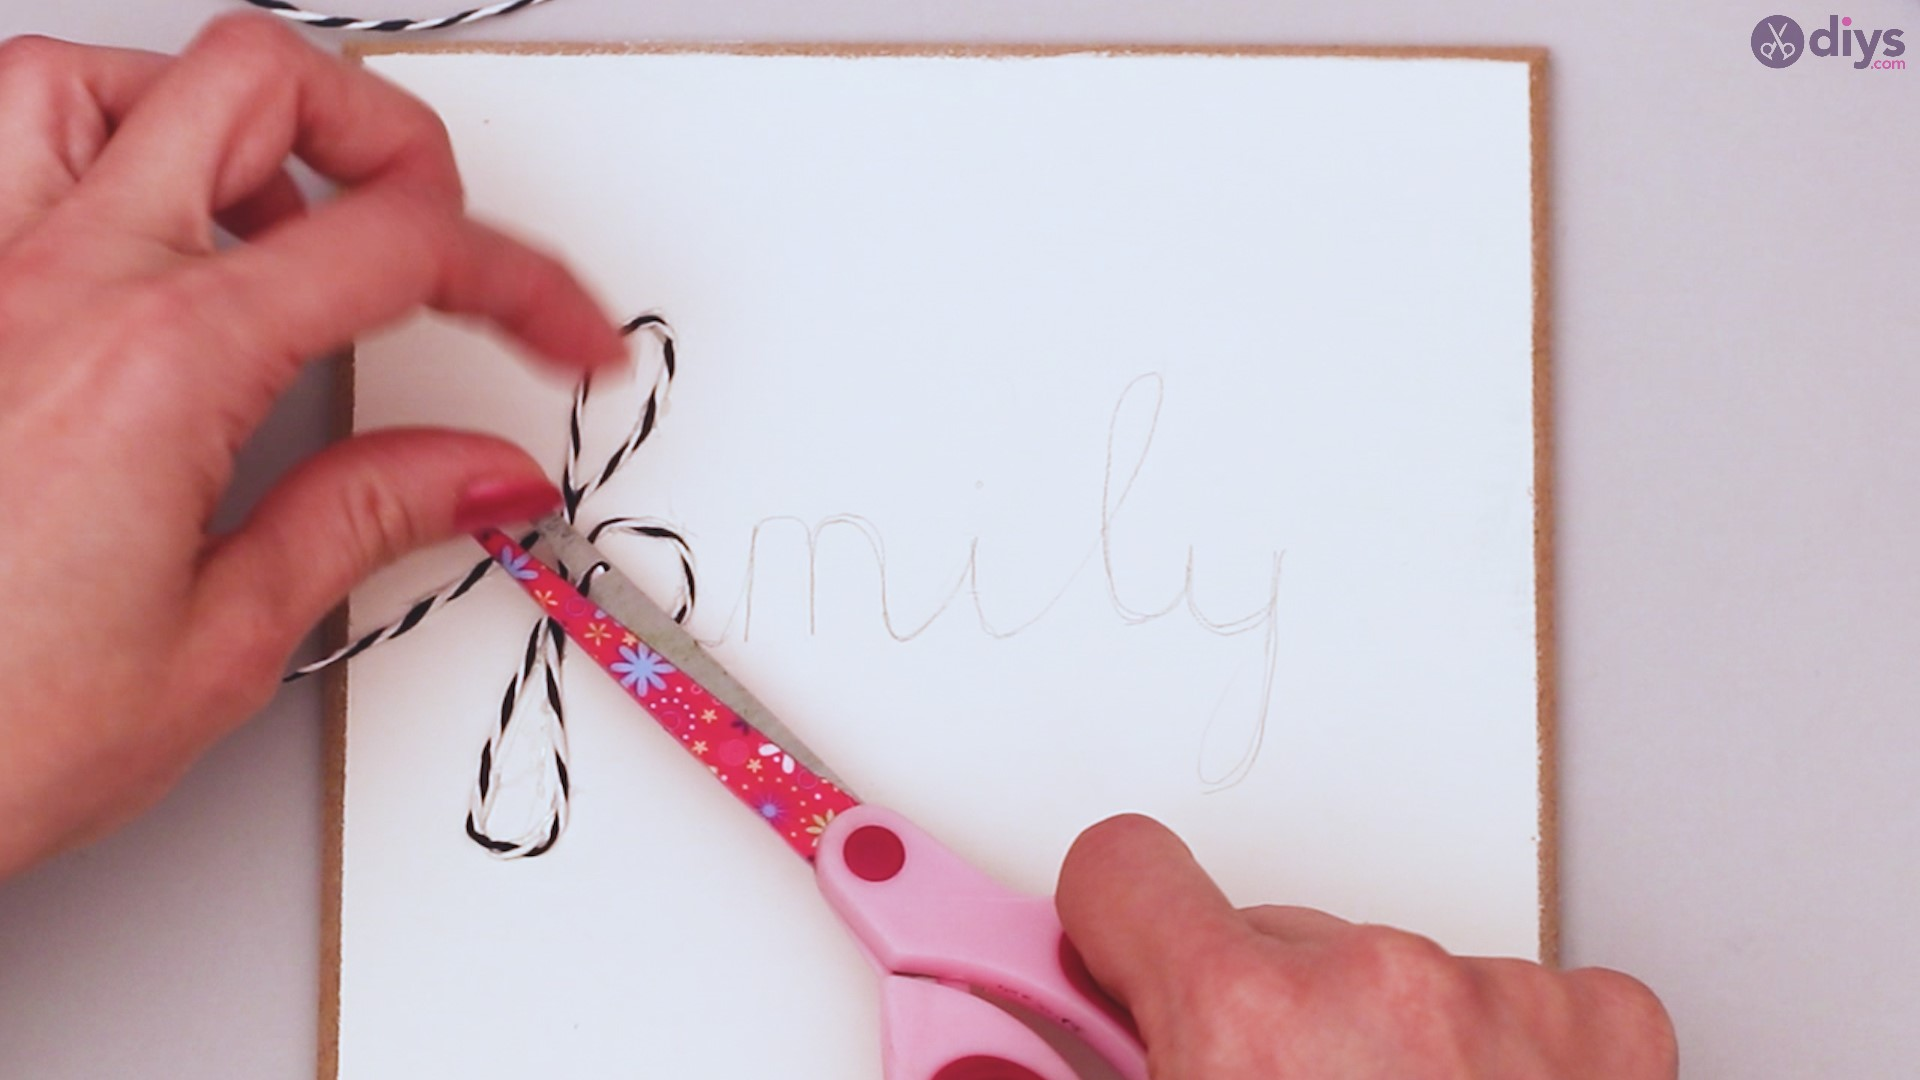 Twine string wall decor diy simple project (13)